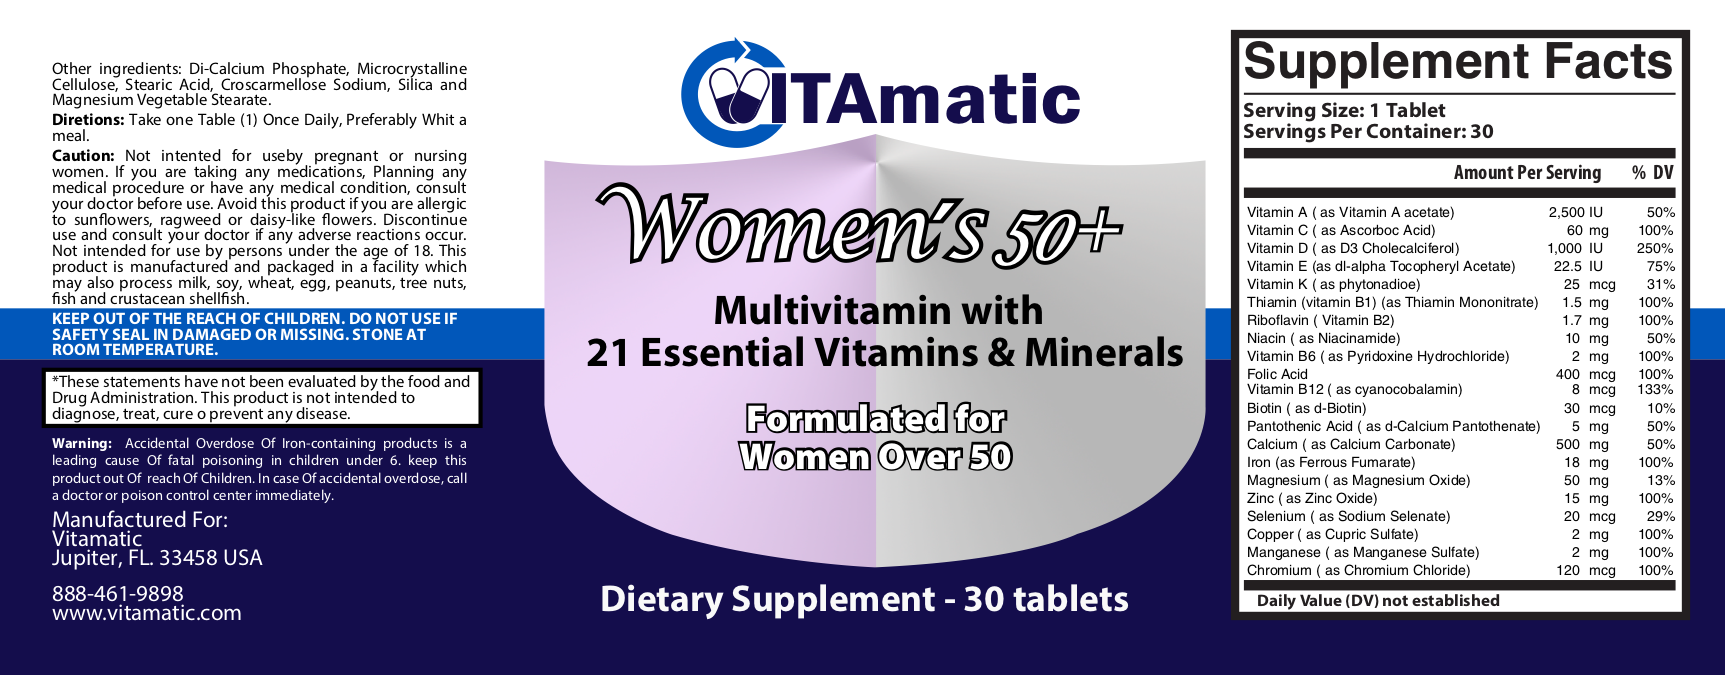 Vitamatic womens 50 plus multivitamin label